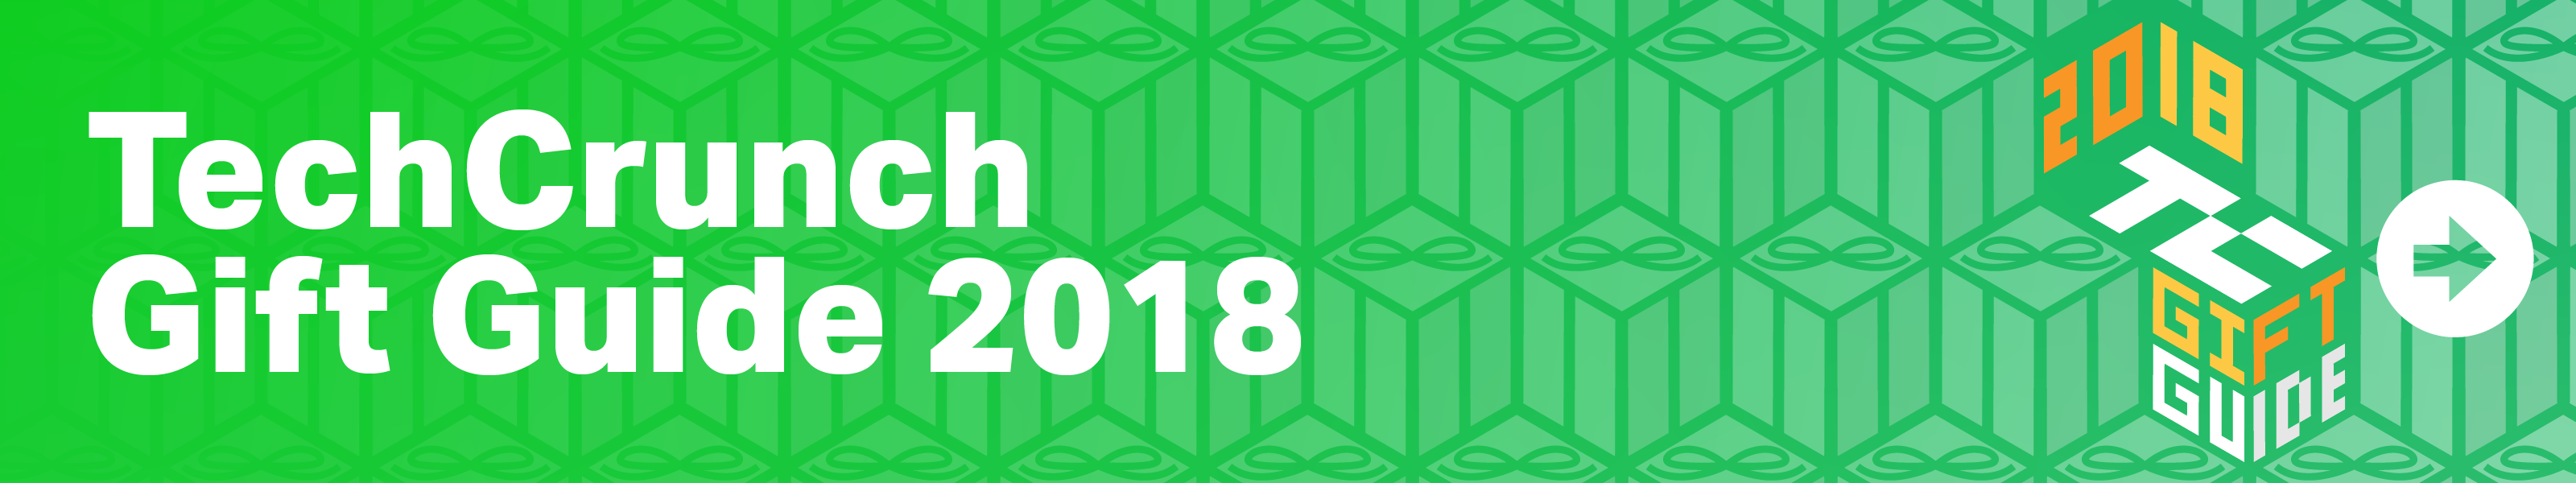 TechCrunch Gift guide 2018 banner